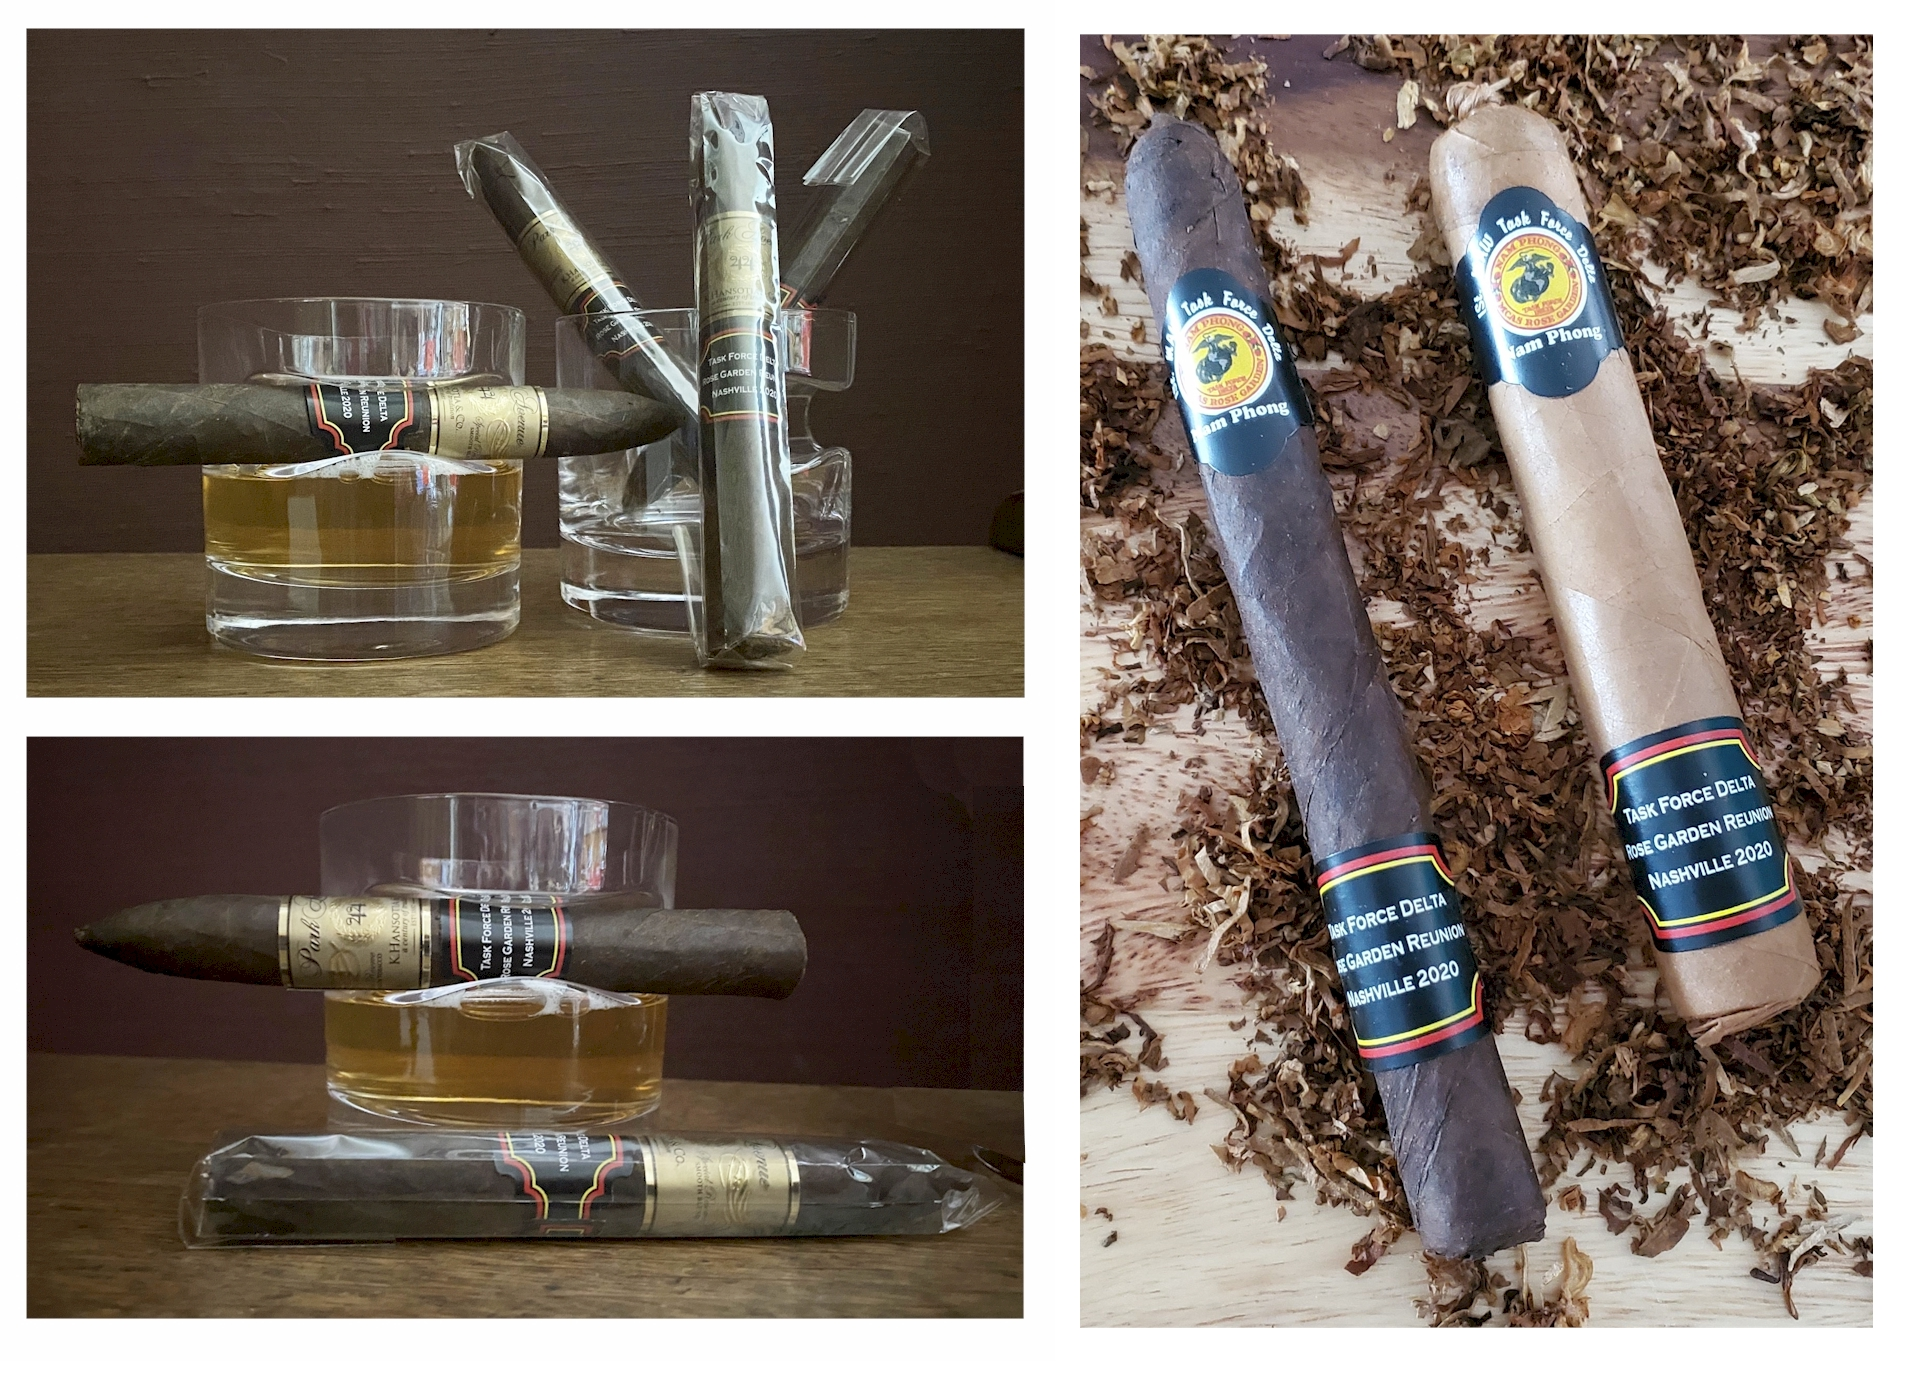 4 MCAS Rose Garden Cigars and 2 Whiskey Cigar Glasses